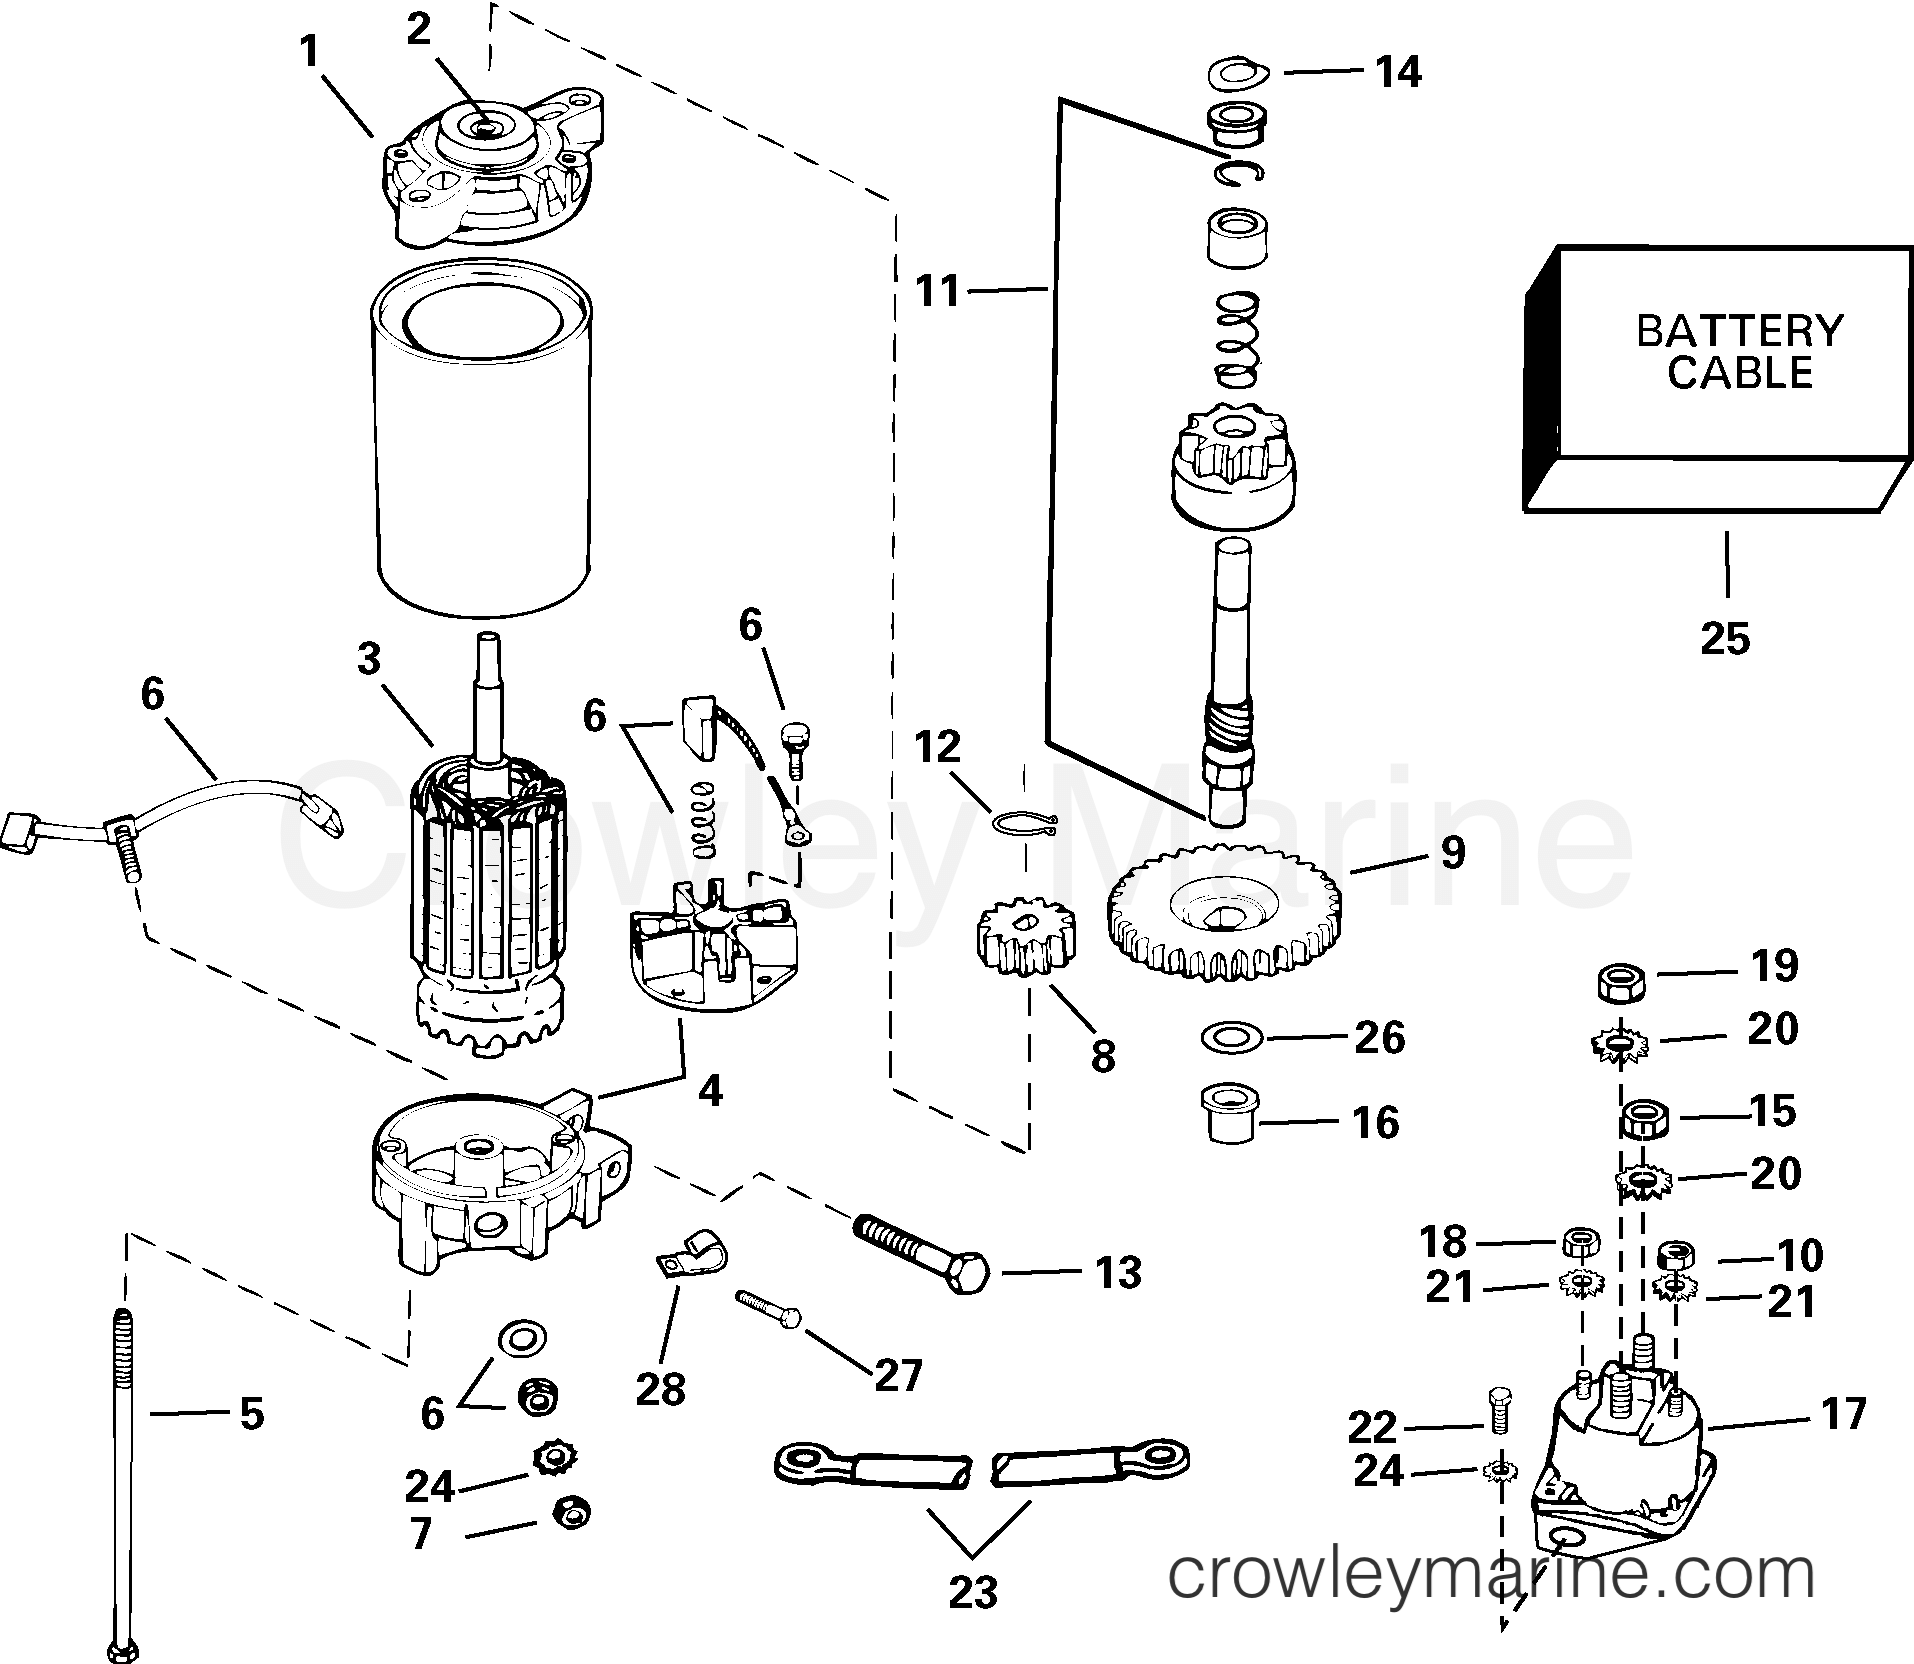 1995 evinrude wiring diagram pdf with Johnson 25 Hp Electric Start Wiring Diagram 1992 on Honda 1978 Outboard Repair Service Manual also Wiring Harness Diagram Mercruiser V 8 furthermore Johnson 25 Hp Electric Start Wiring Diagram 1992 moreover Marine Ignition Switch Wiring Diagram Mercruiser Interrupter additionally 85 Hp Johnson Outboard Motor Wiring Diagram.